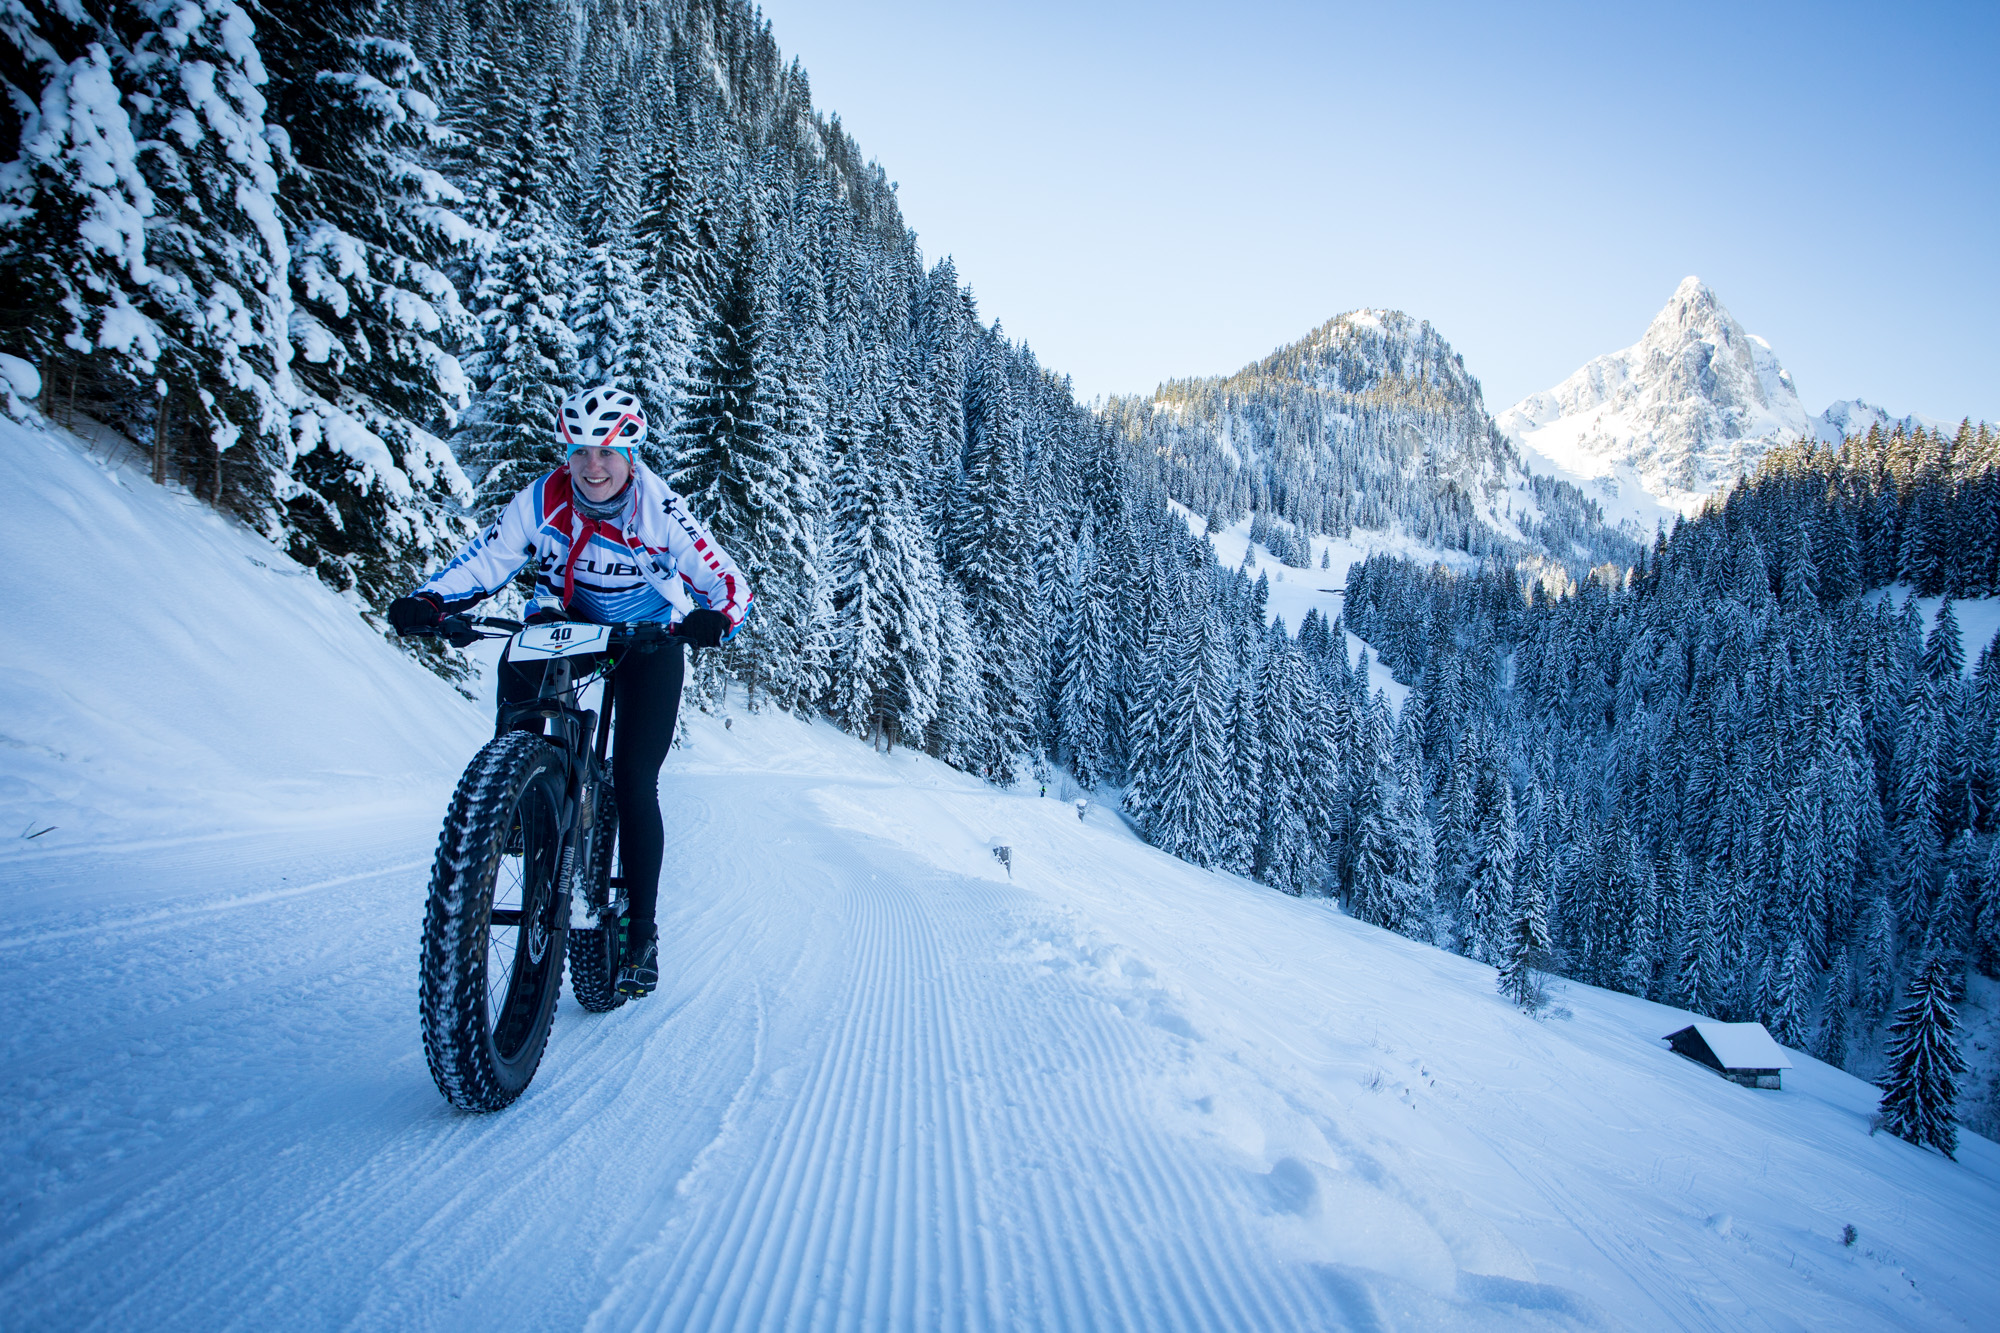 Report from Stage 1 of the Snow Bike Festival